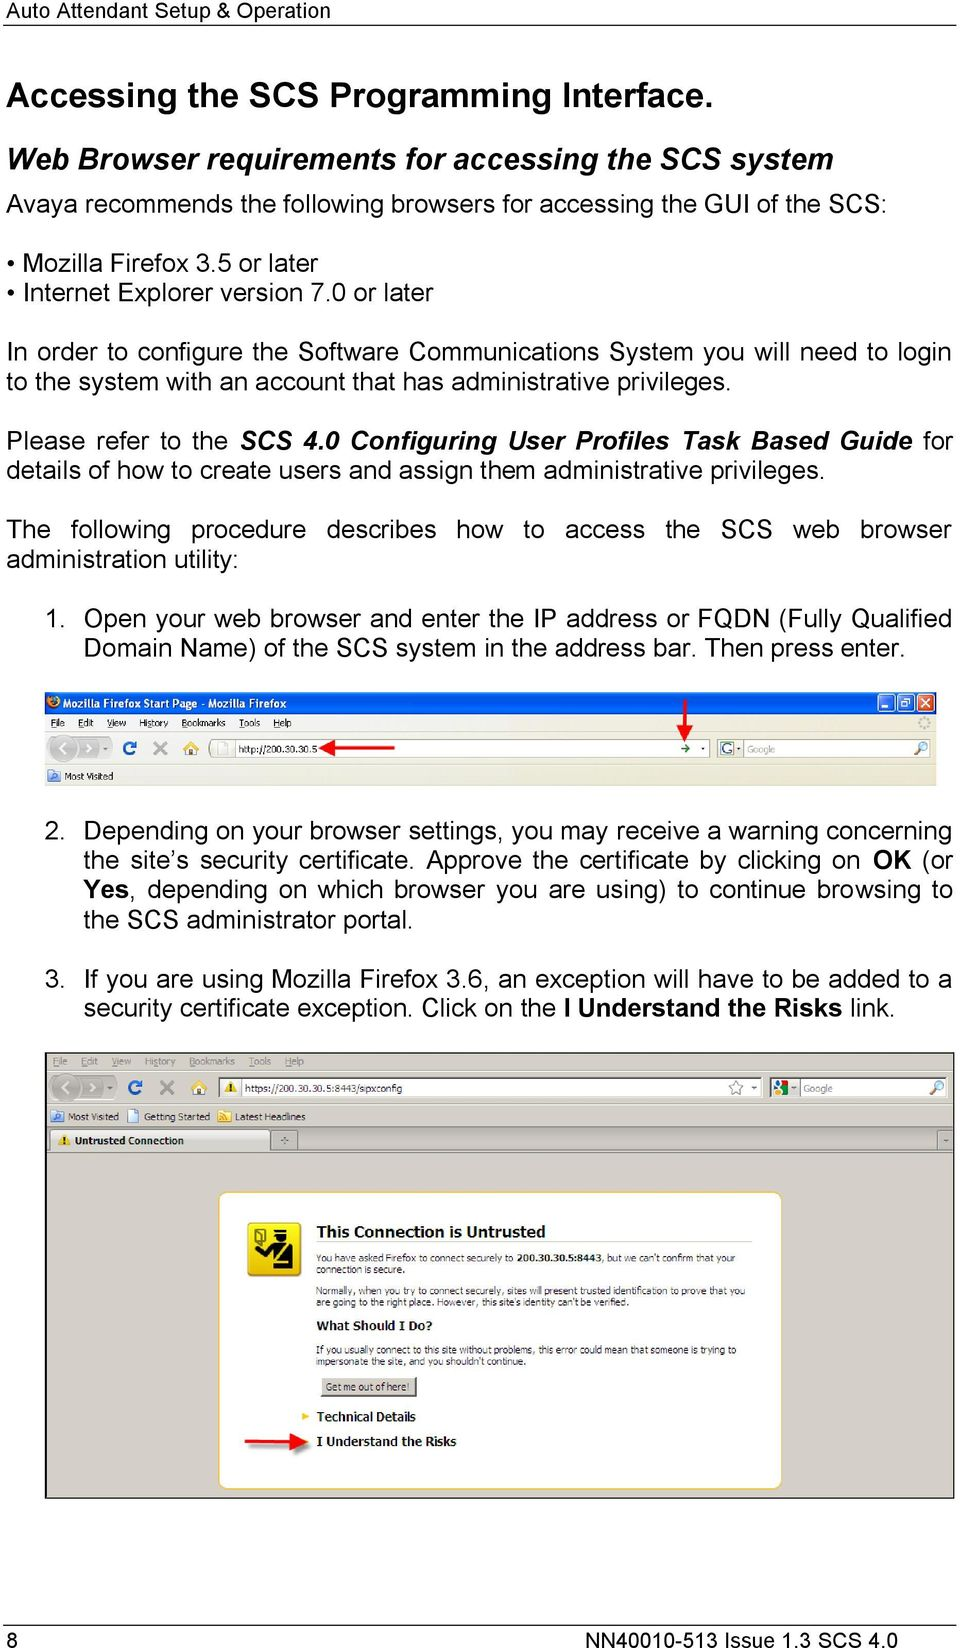 Please refer to the SCS 4.0 Configuring User Profiles Task Based Guide for details of how to create users and assign them administrative privileges.